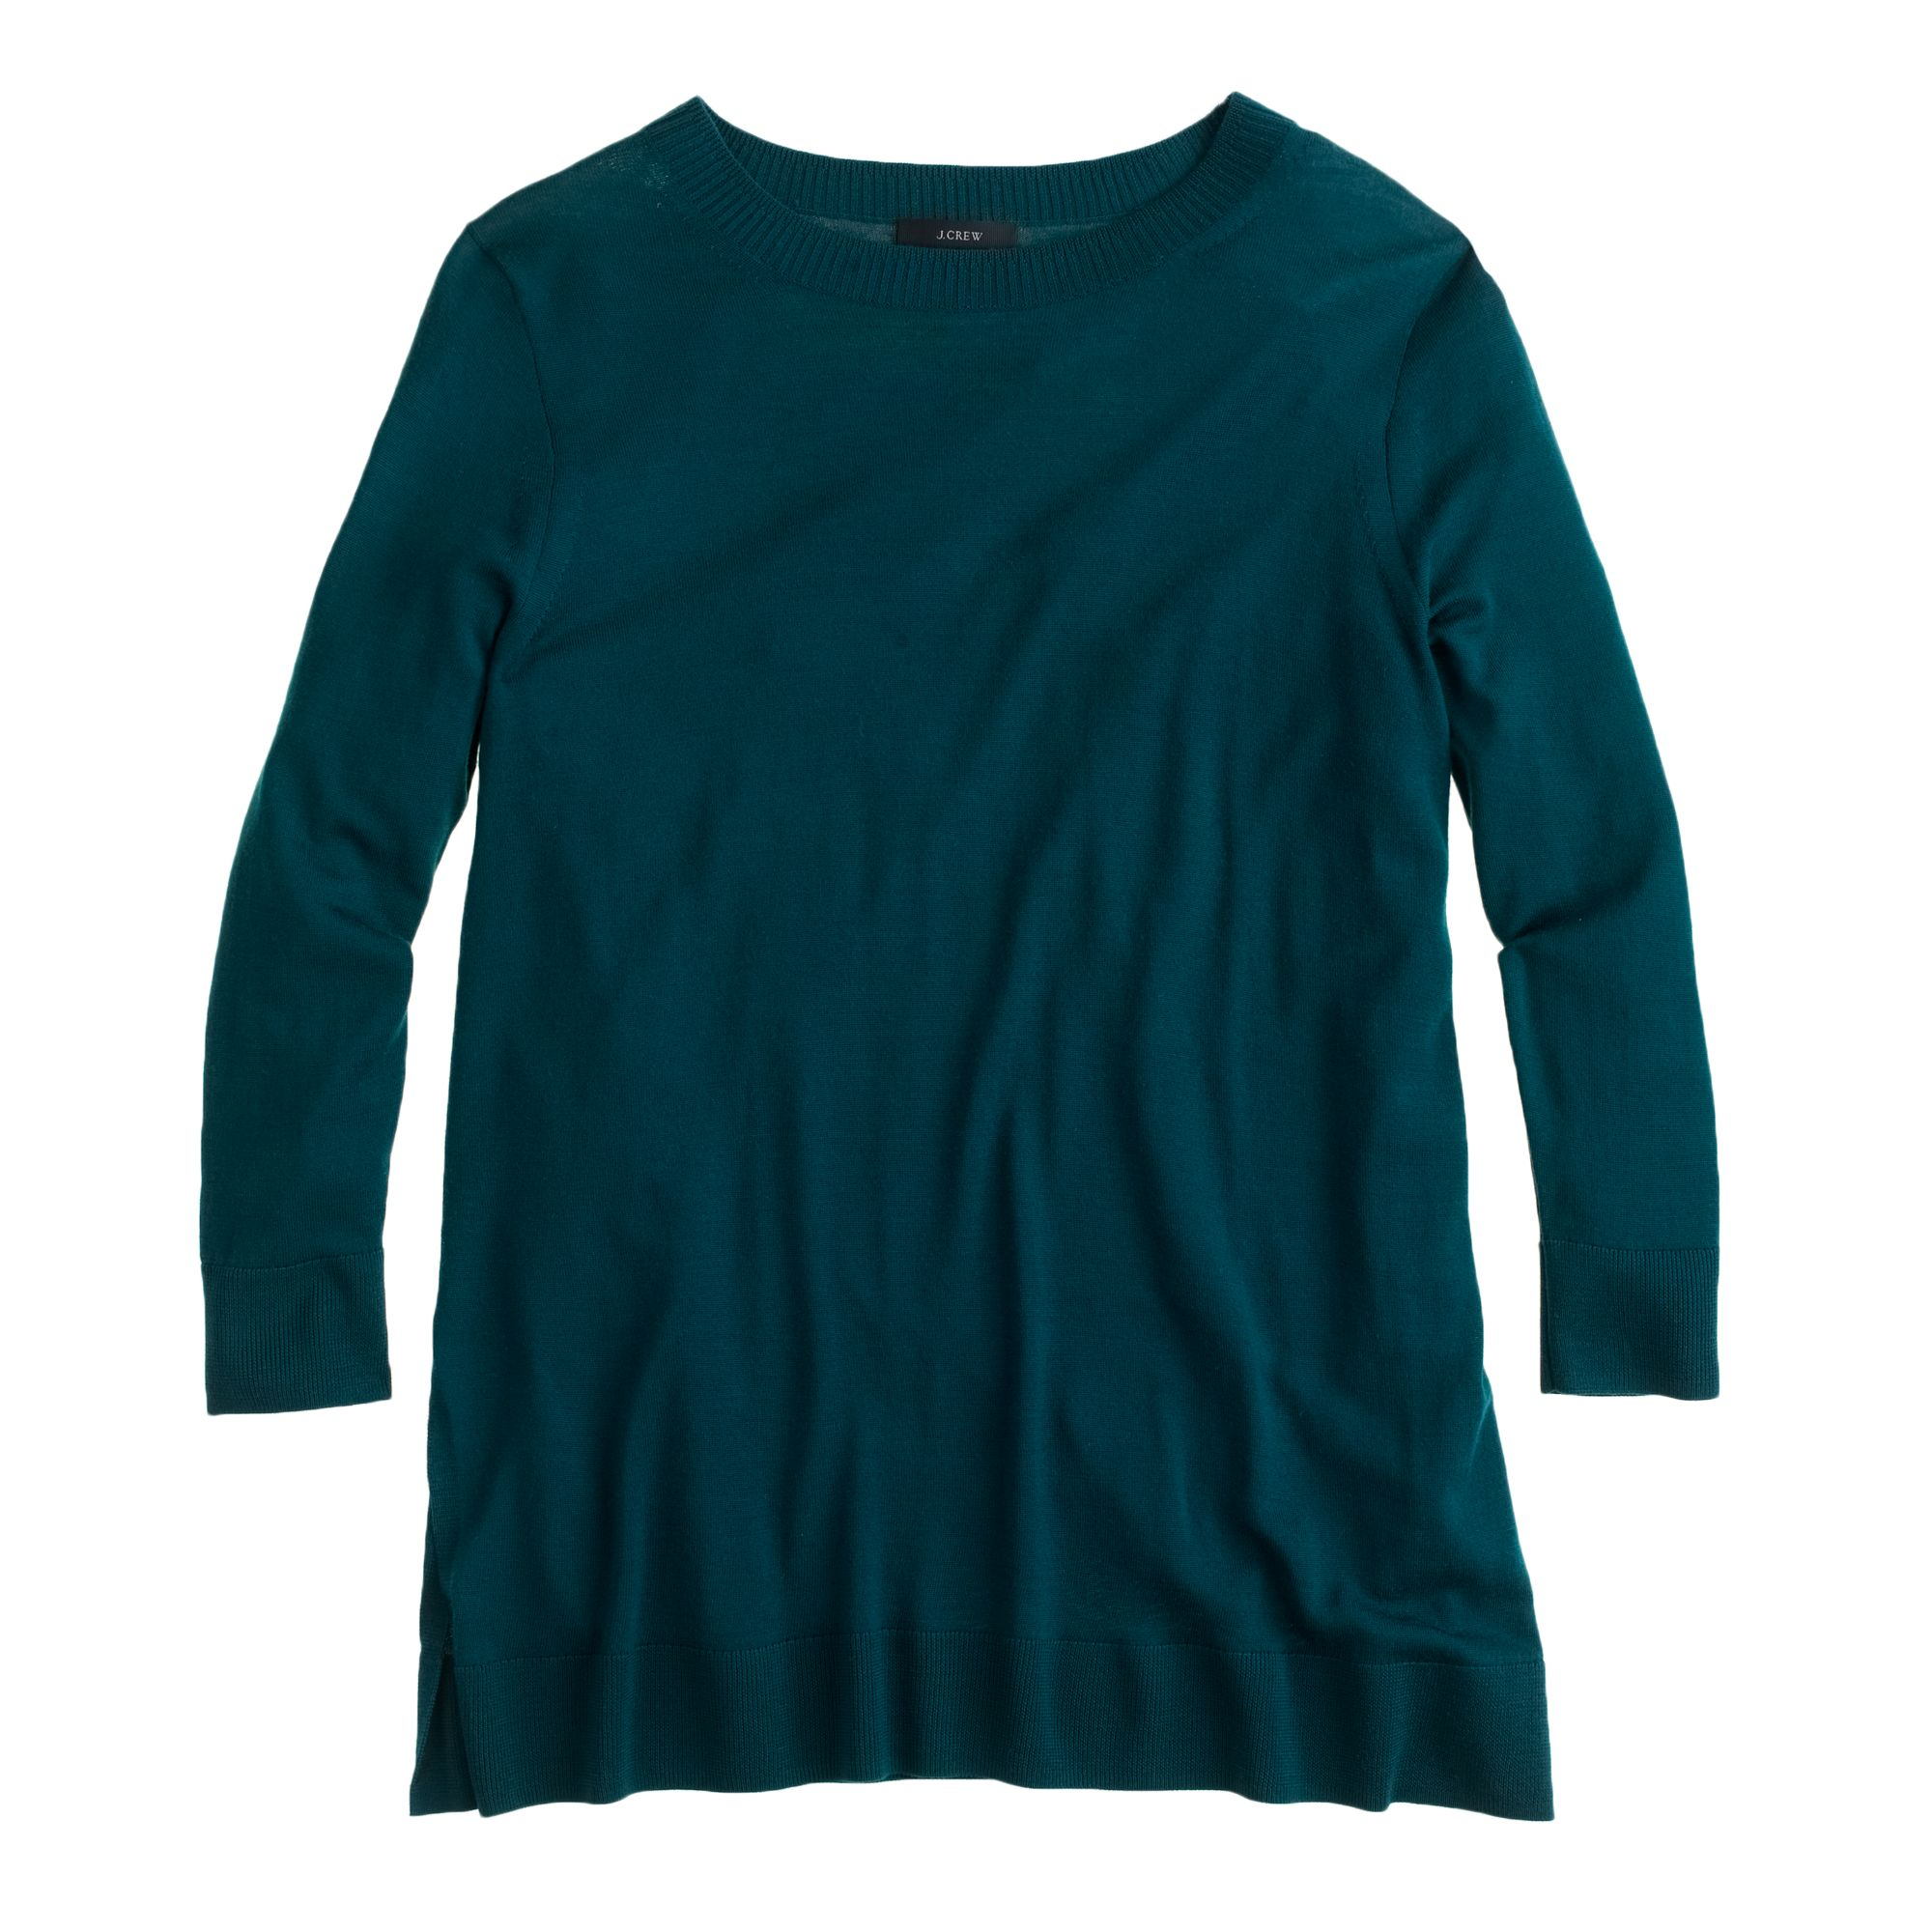 J.crew Lightweight Merino Tunic Sweater in Blue | Lyst